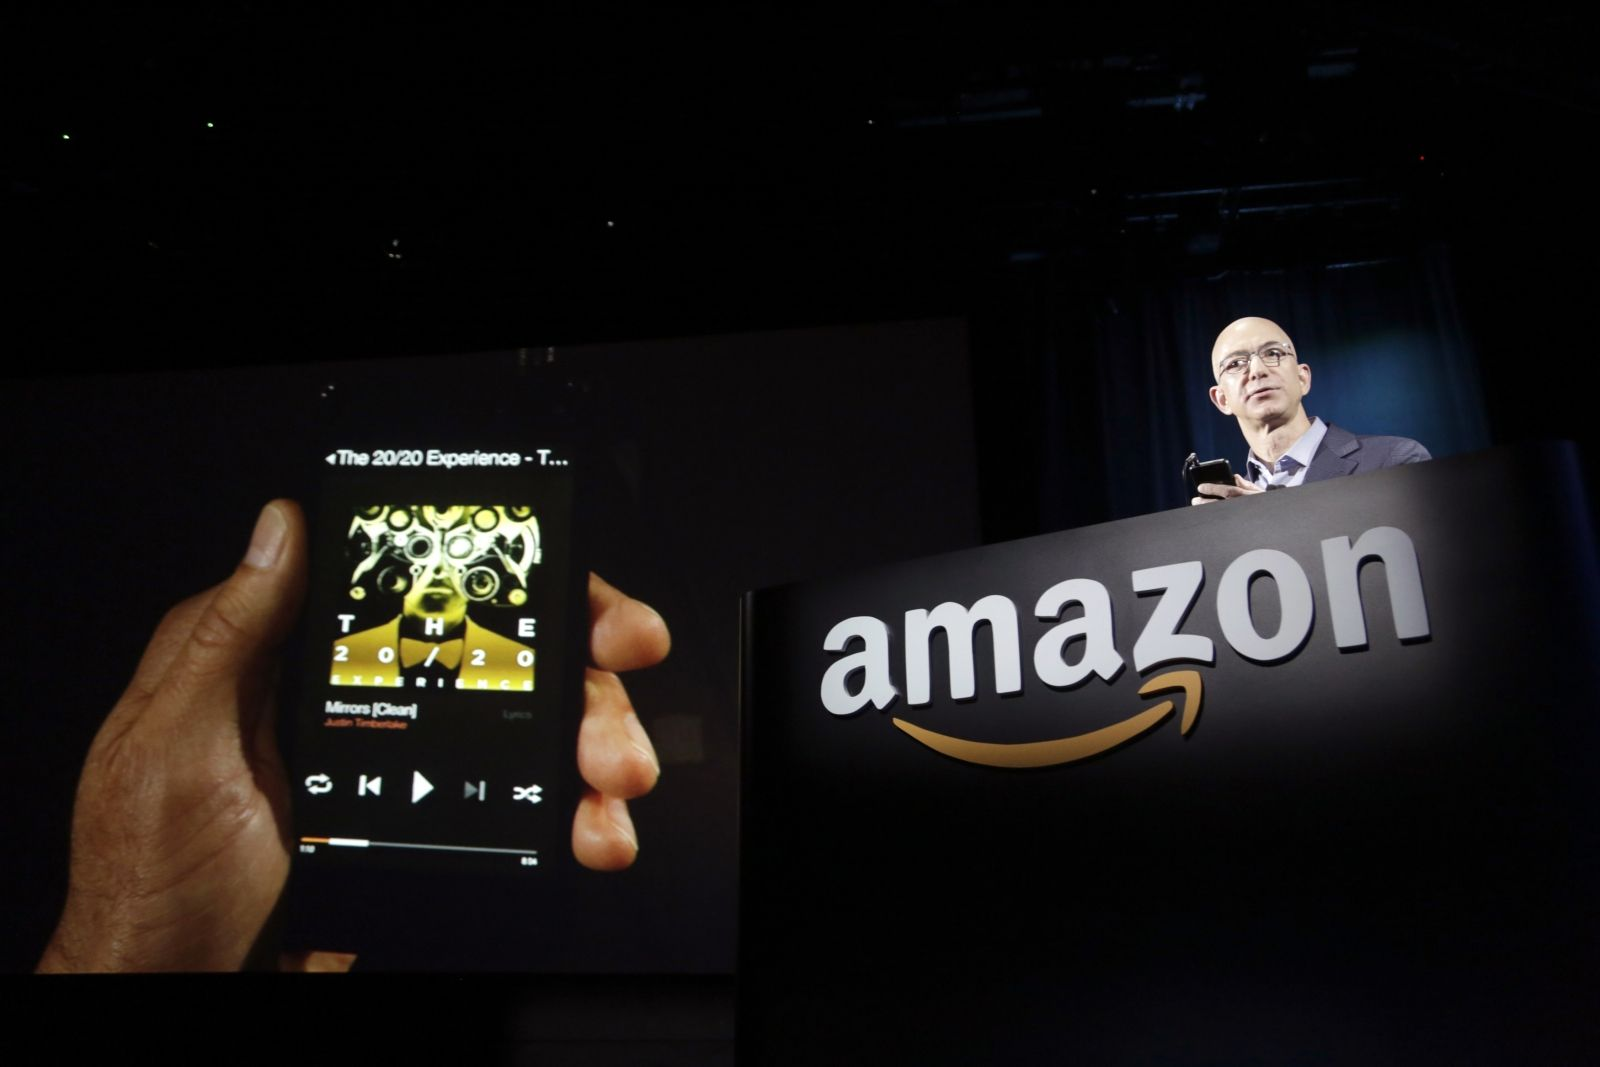 New Amazon Inc. tablet